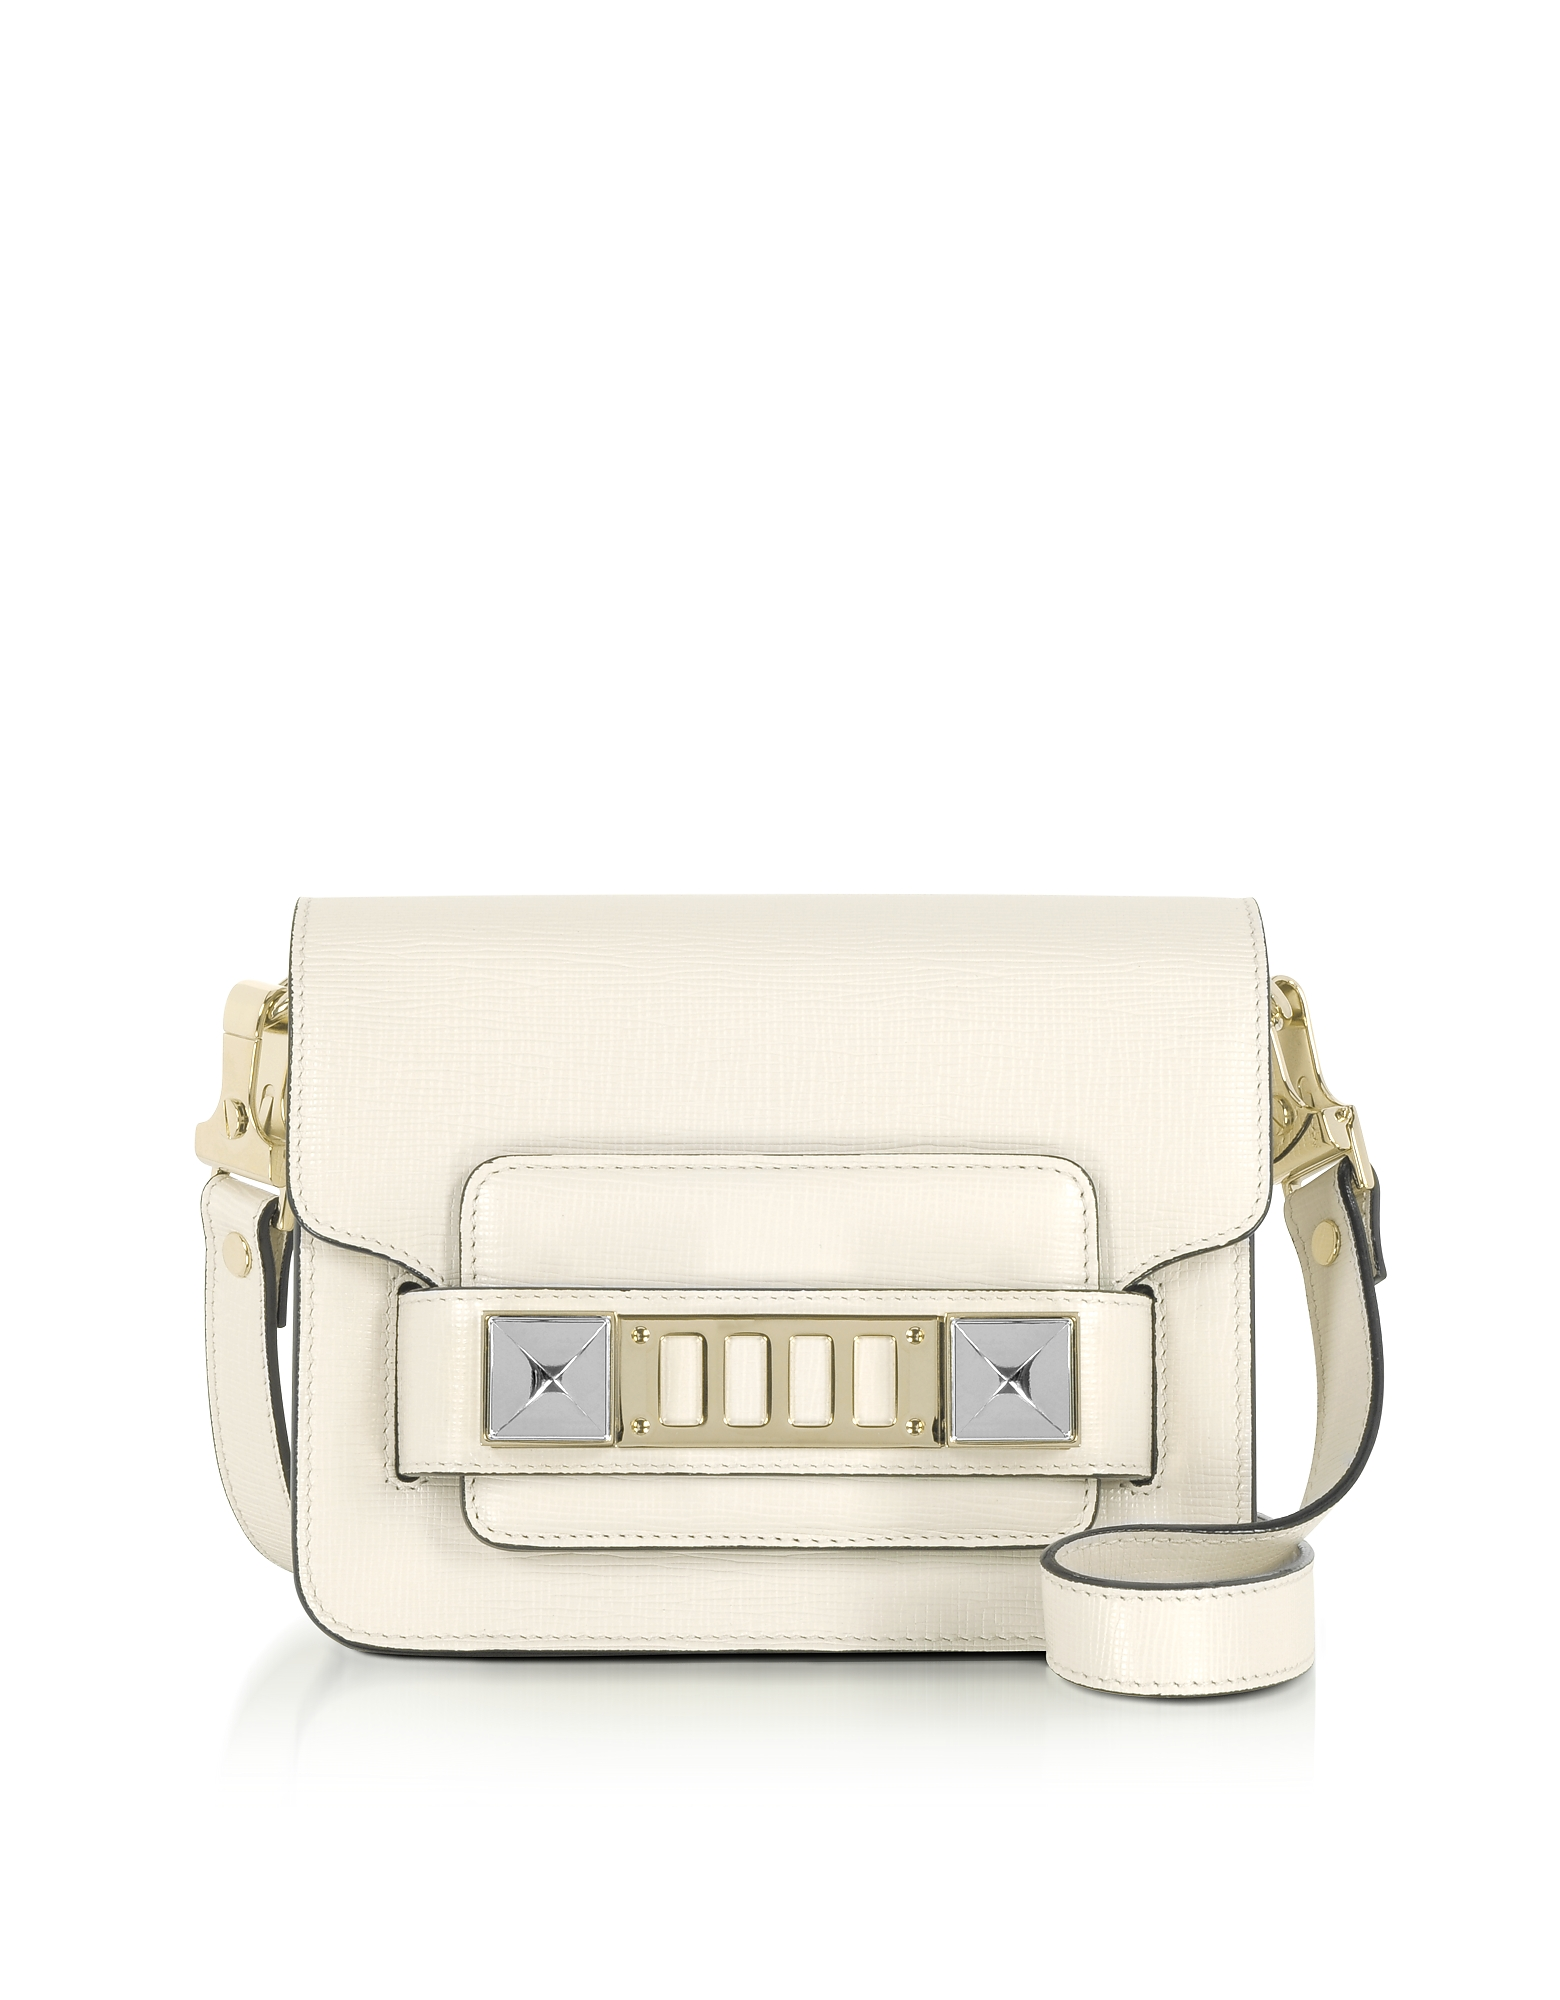 Proenza Schouler Handbags, Ps11 Clay New Linosa Leather Crossbody Bag